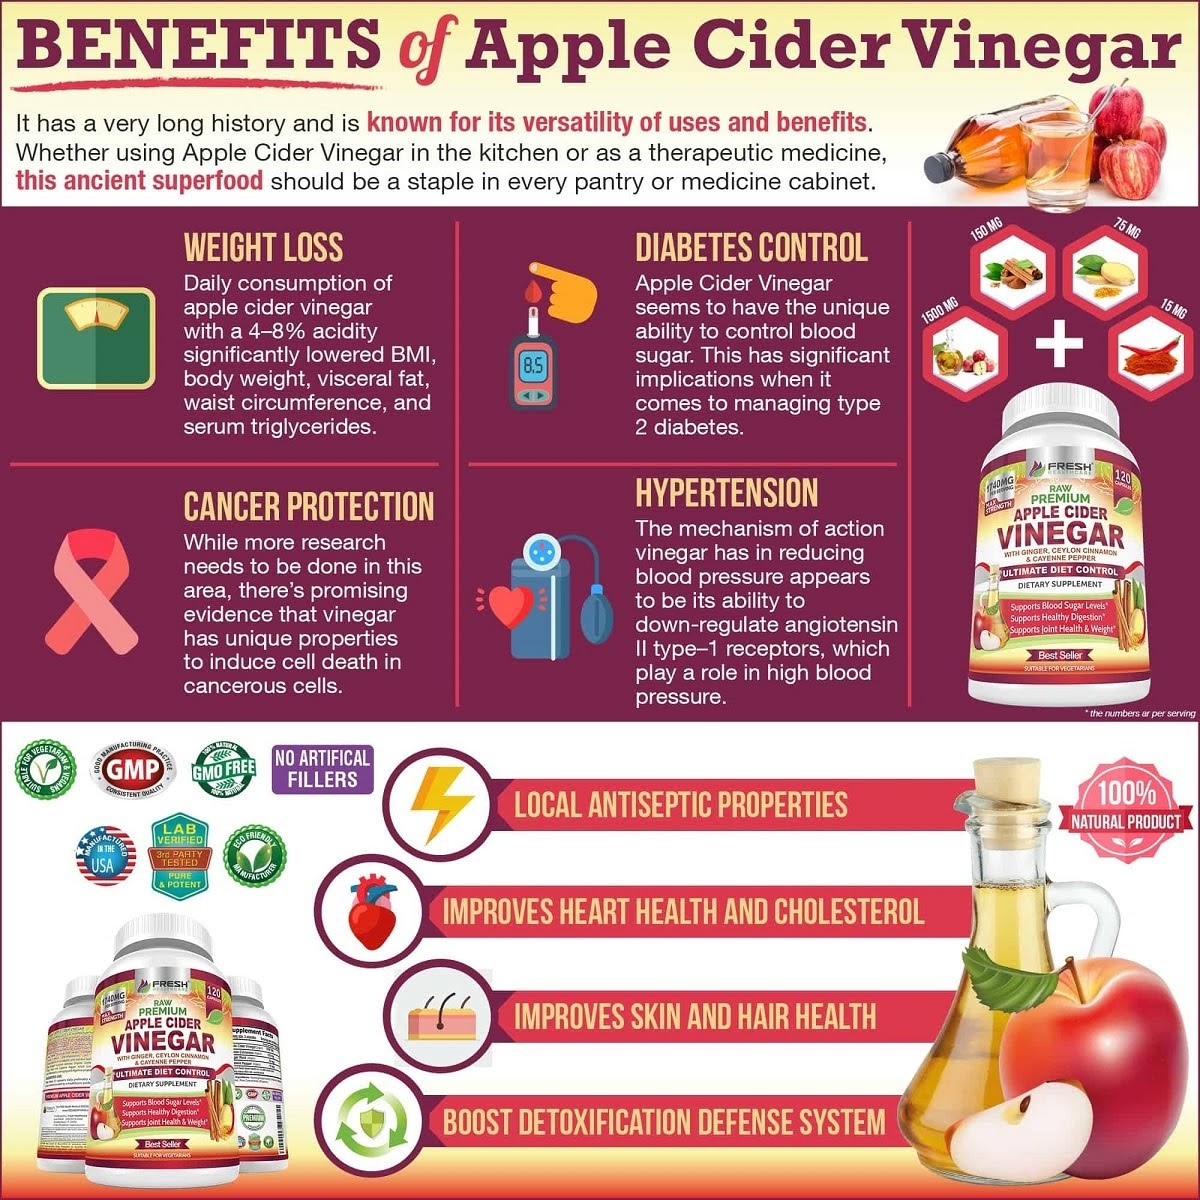 Apple Cider Vinegar: A Versatile and Therapeutic Superfood - Infographic